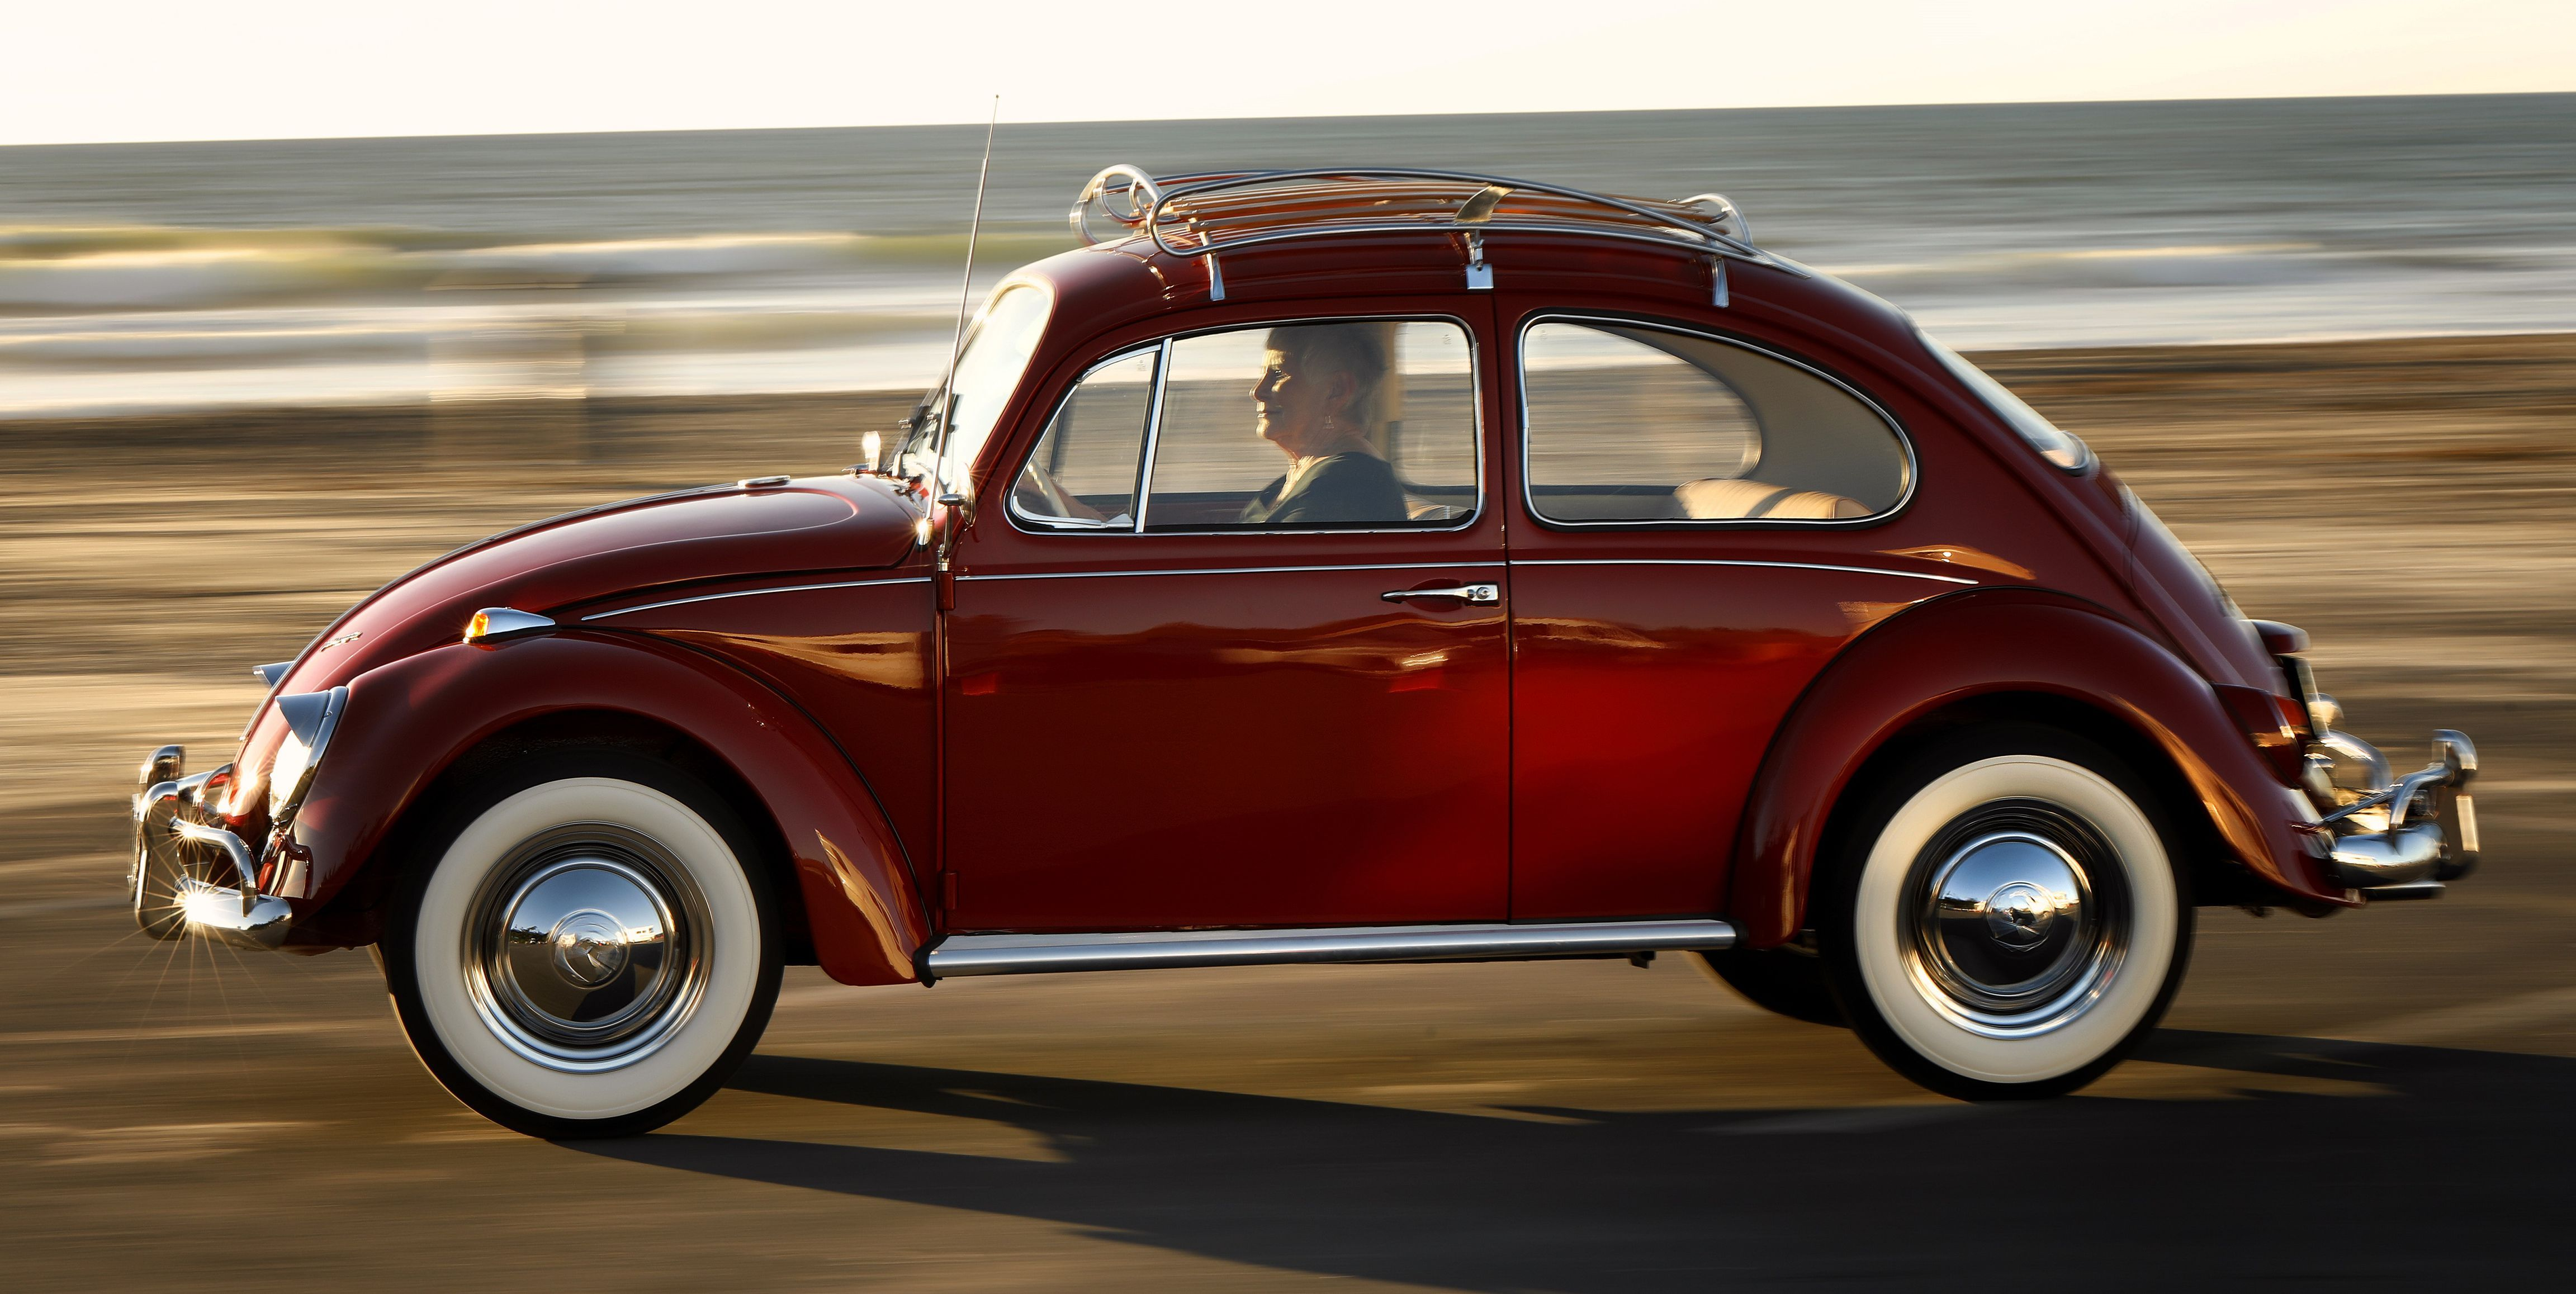 lucky owner gets her 350,000-mile beetle restored by vw for free | classic  cars, volkswagen beetle, volkswagen  pinterest